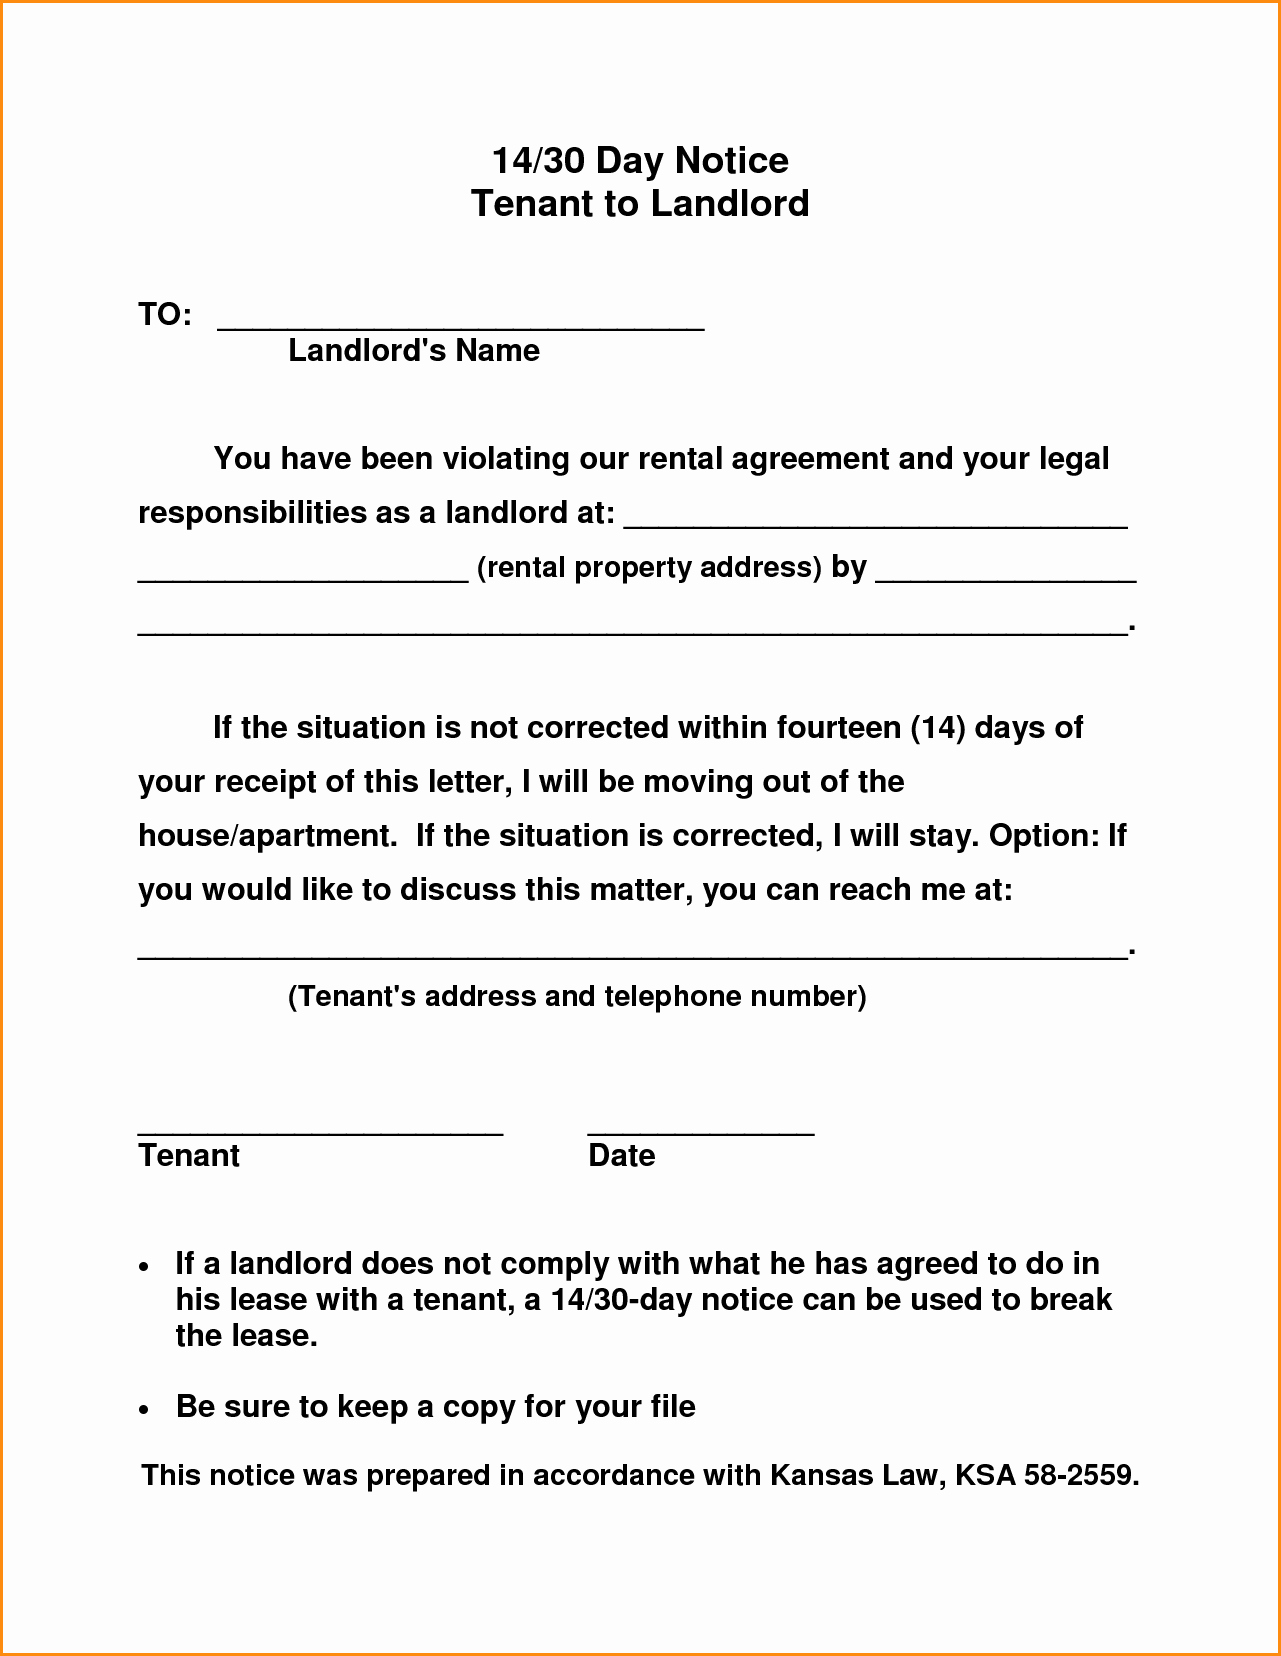 30 Days Notice to Landlord Template Fresh 30 Day Notice to Landlord Template